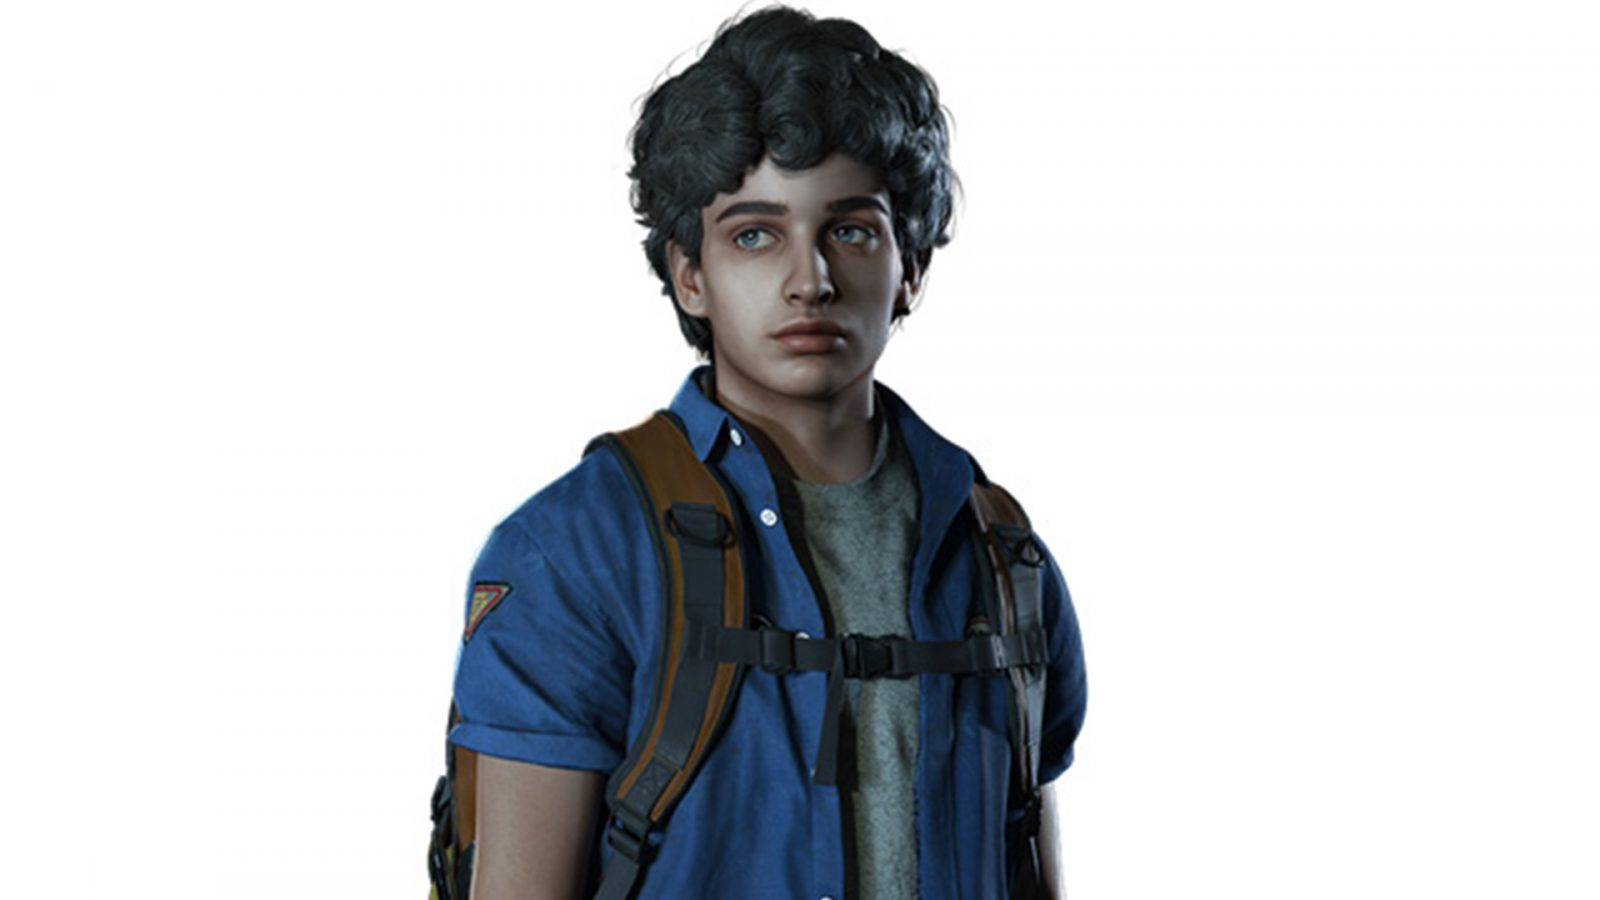 Resident Evil Resistance has a guy named Martin Sandwich, so Capcom knows what it's doing